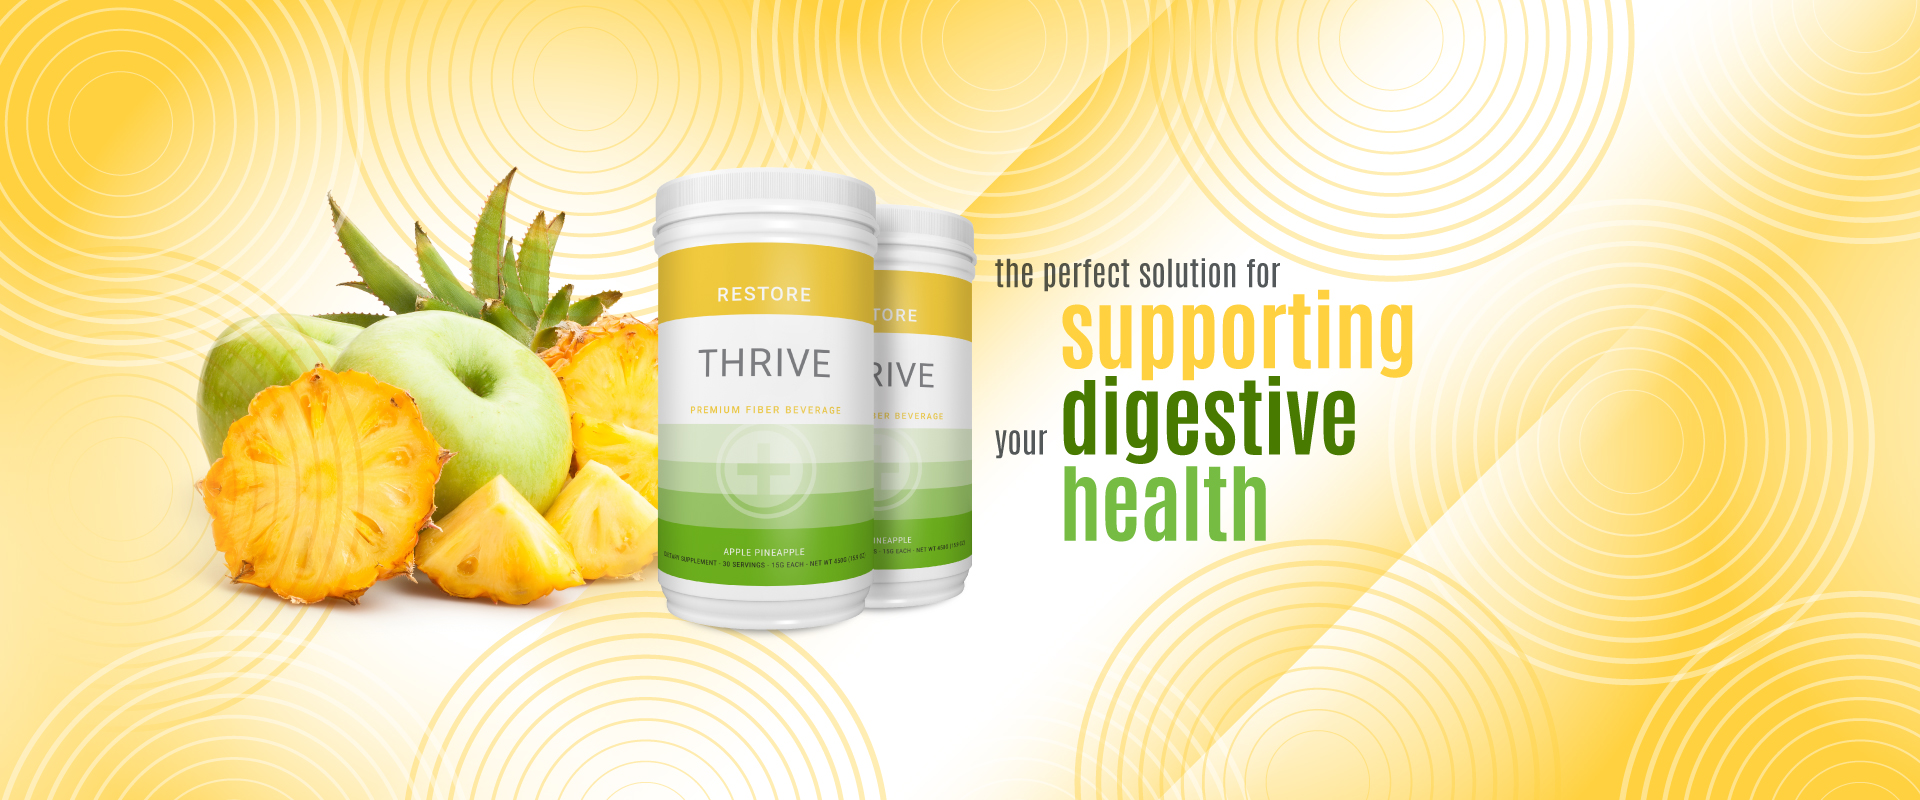 THRIVE Plus - RESTORE